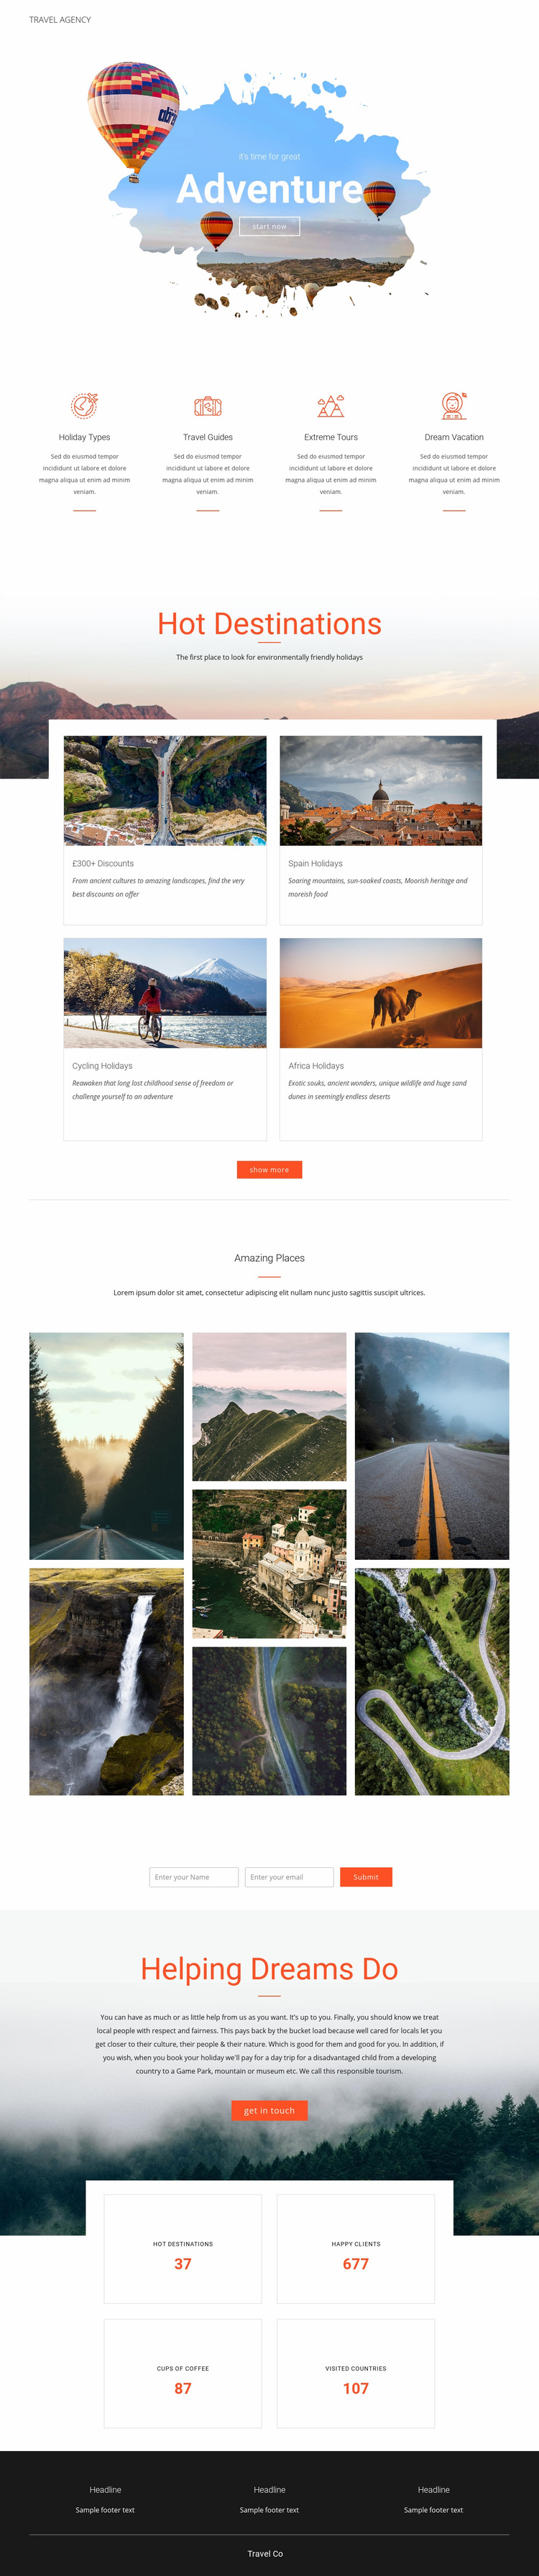 Adventure tours and travel Web Page Designer